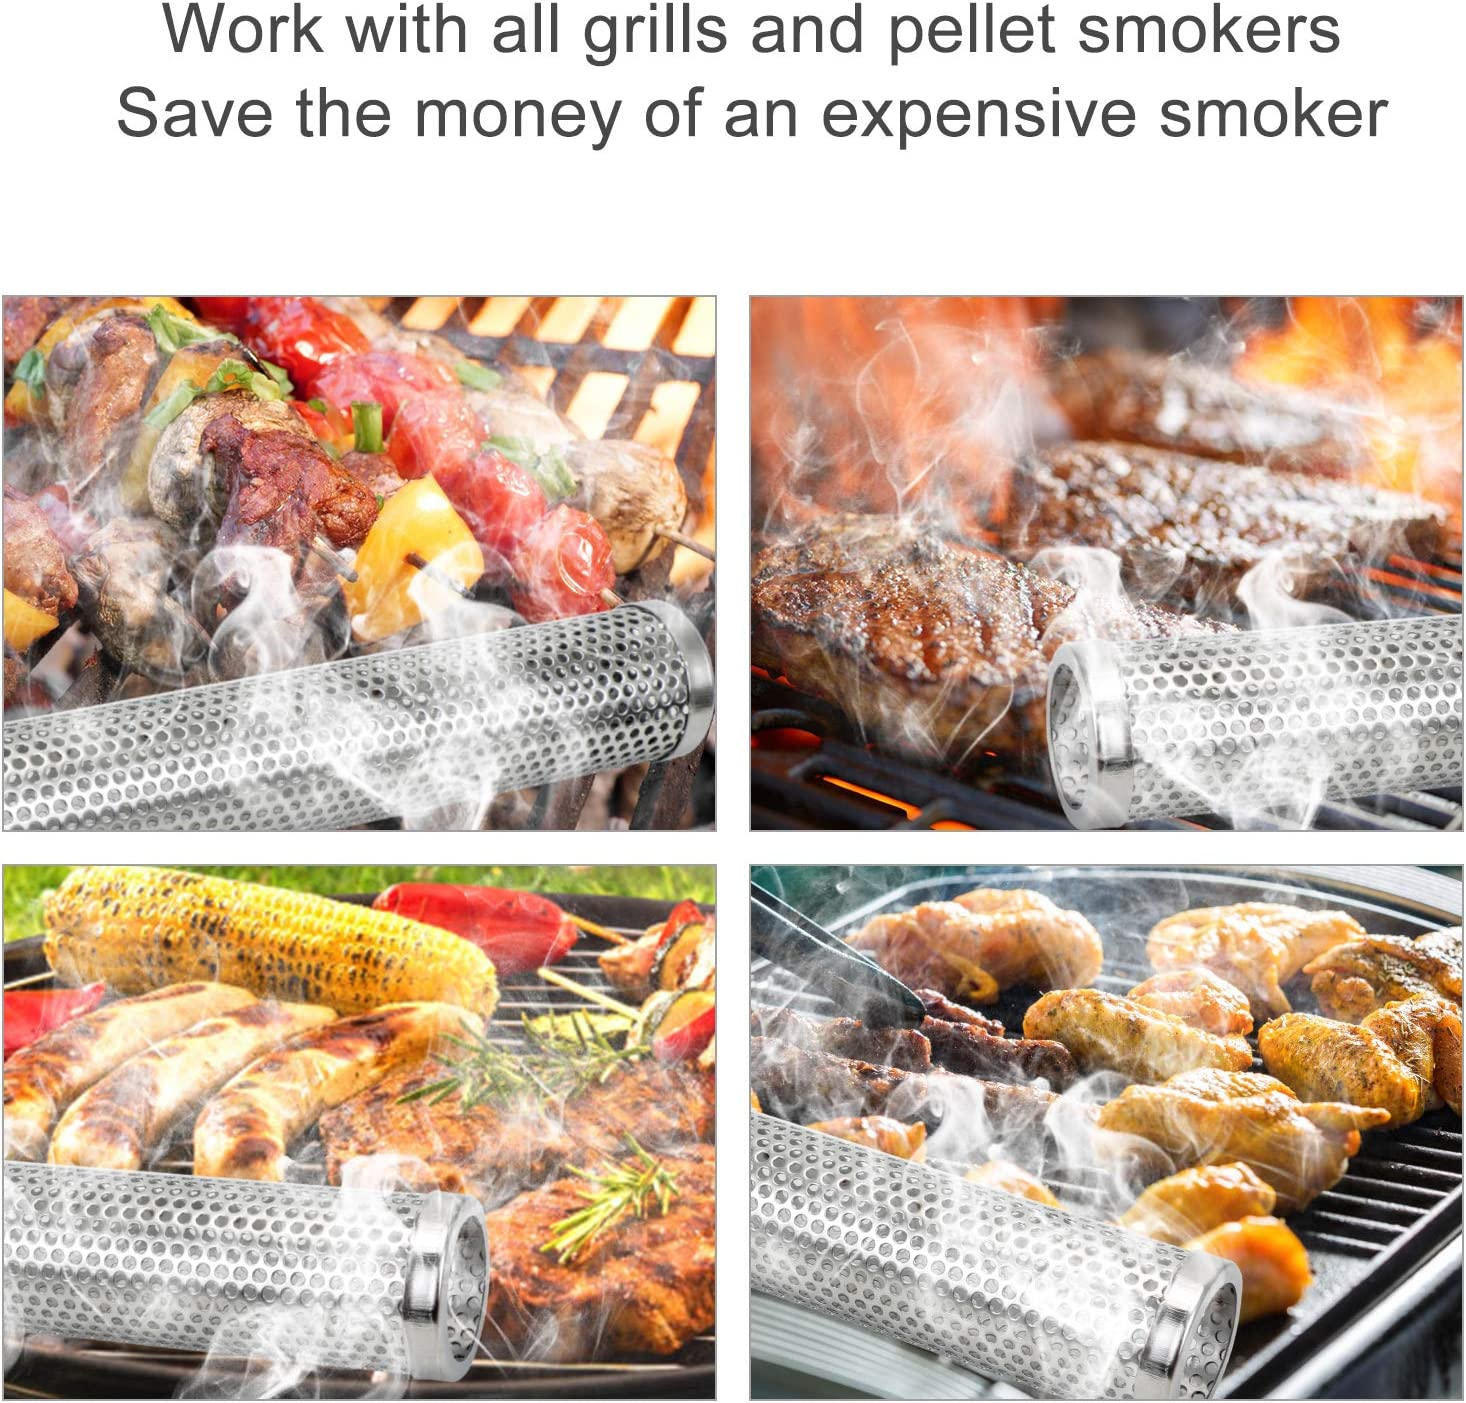 Pellet Smoker Tube Circular 12 Stainless Steel BBQ Wood Pellet Tube Smoker for Cold//Hot Smoking Portable Barbecue Smoke Generator Works with Electric Gas Charcoal Grill Smokers